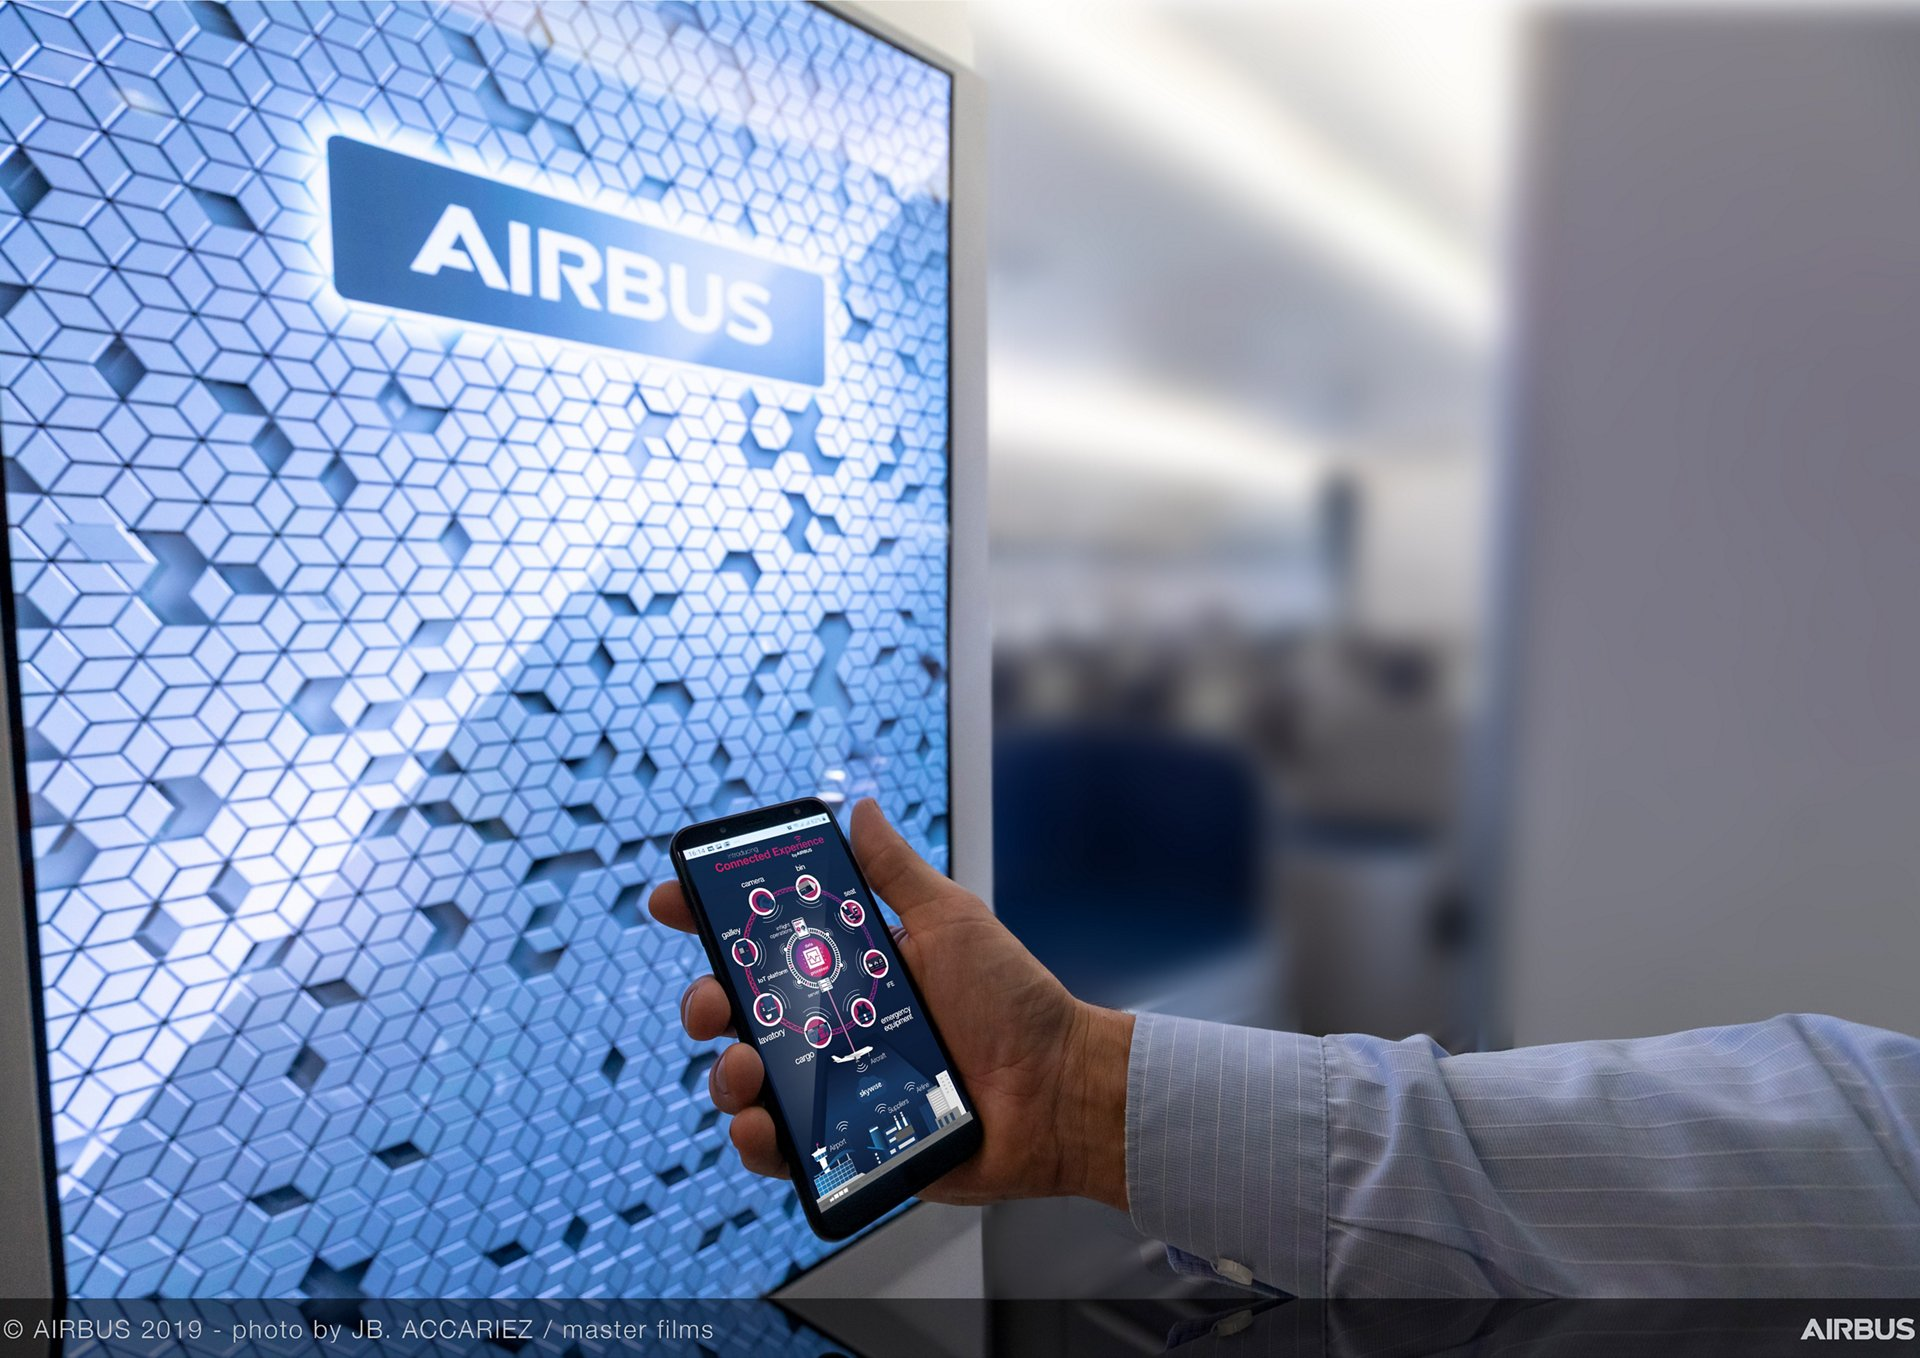 Airspace Connected Experience will usher in a new personalised experience for passengers and provide opportunities for improving airlines' ancillary revenues and operational efficiencies